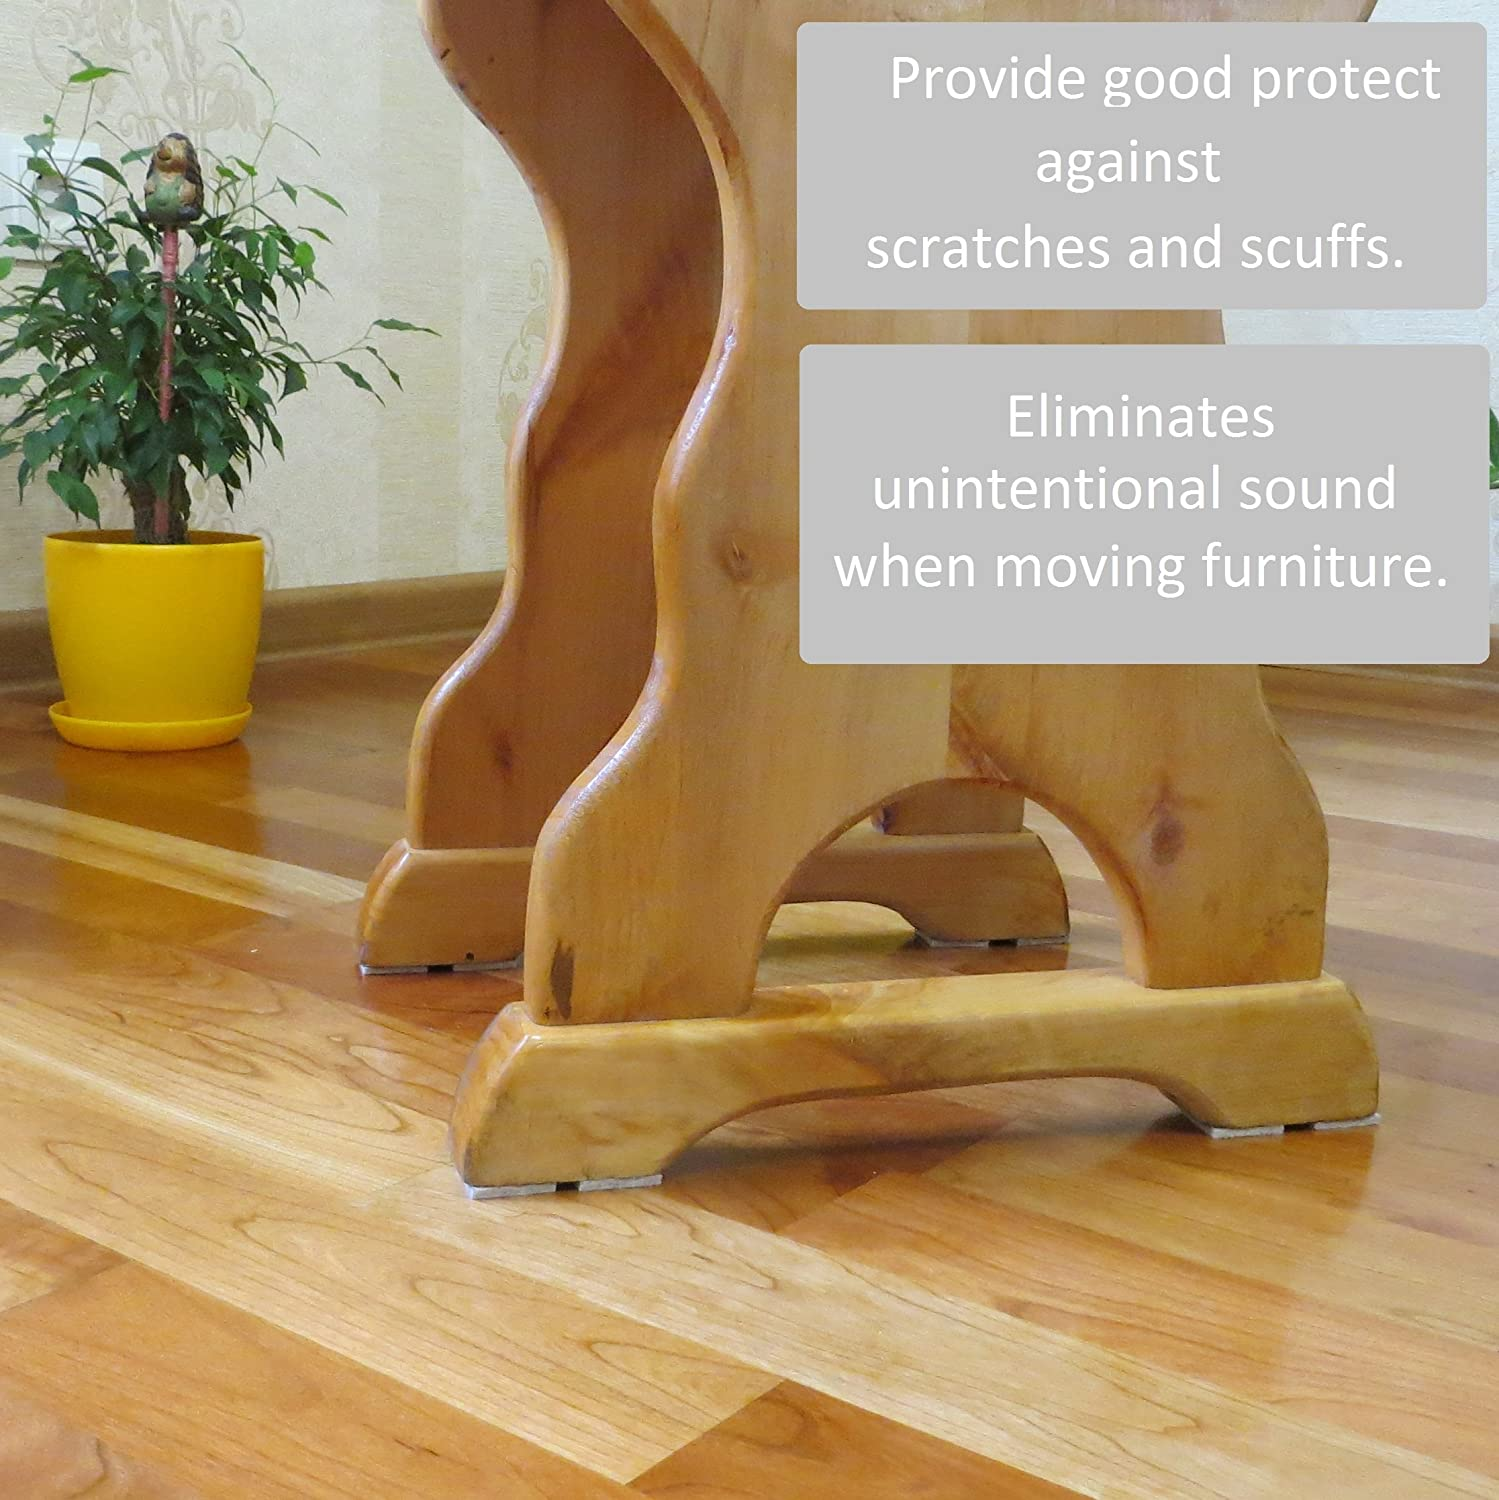 lemon inspiration trends furniture pads needs wood hacks and xfile from chair rolling oil scratches know to felt floor leg inspiring floors of homeowner protect every stunning